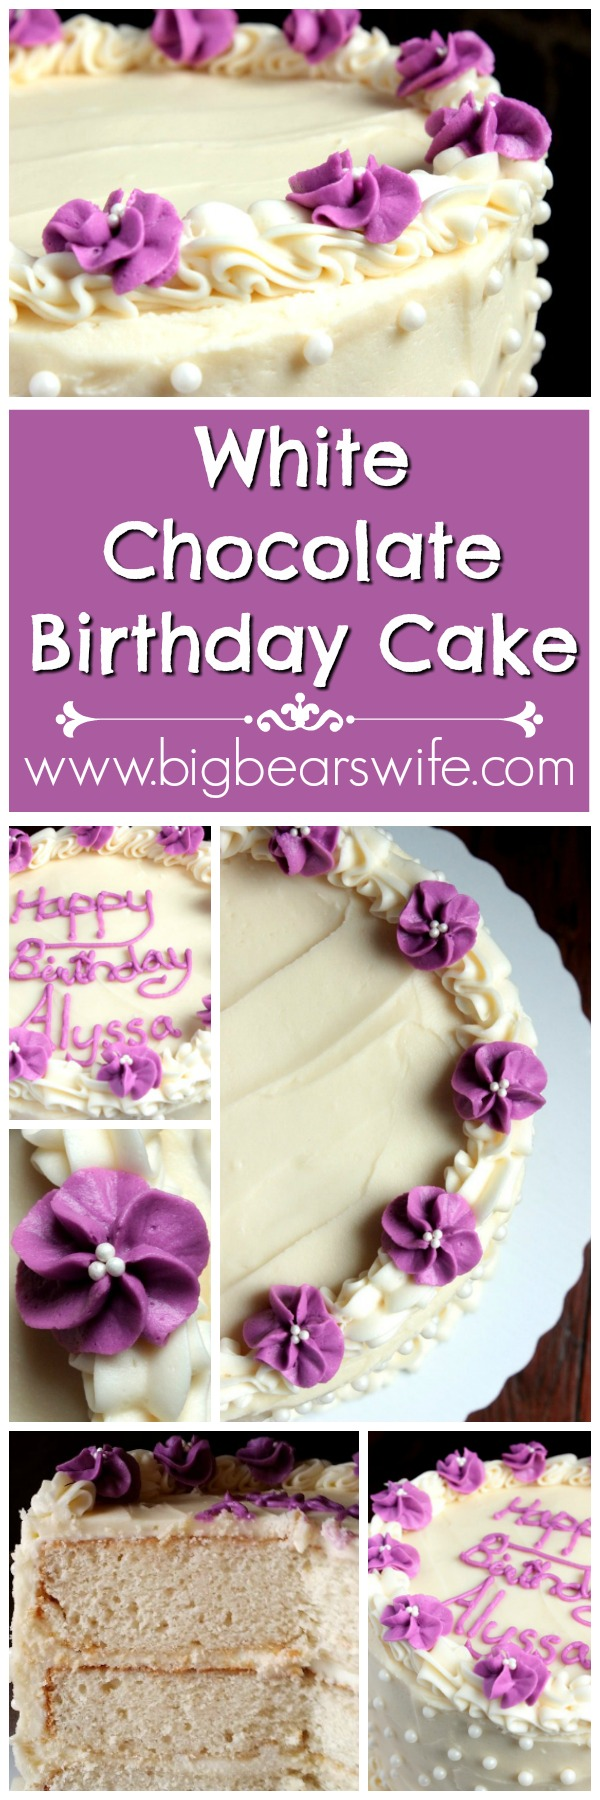 White Chocolate Birthday Cake